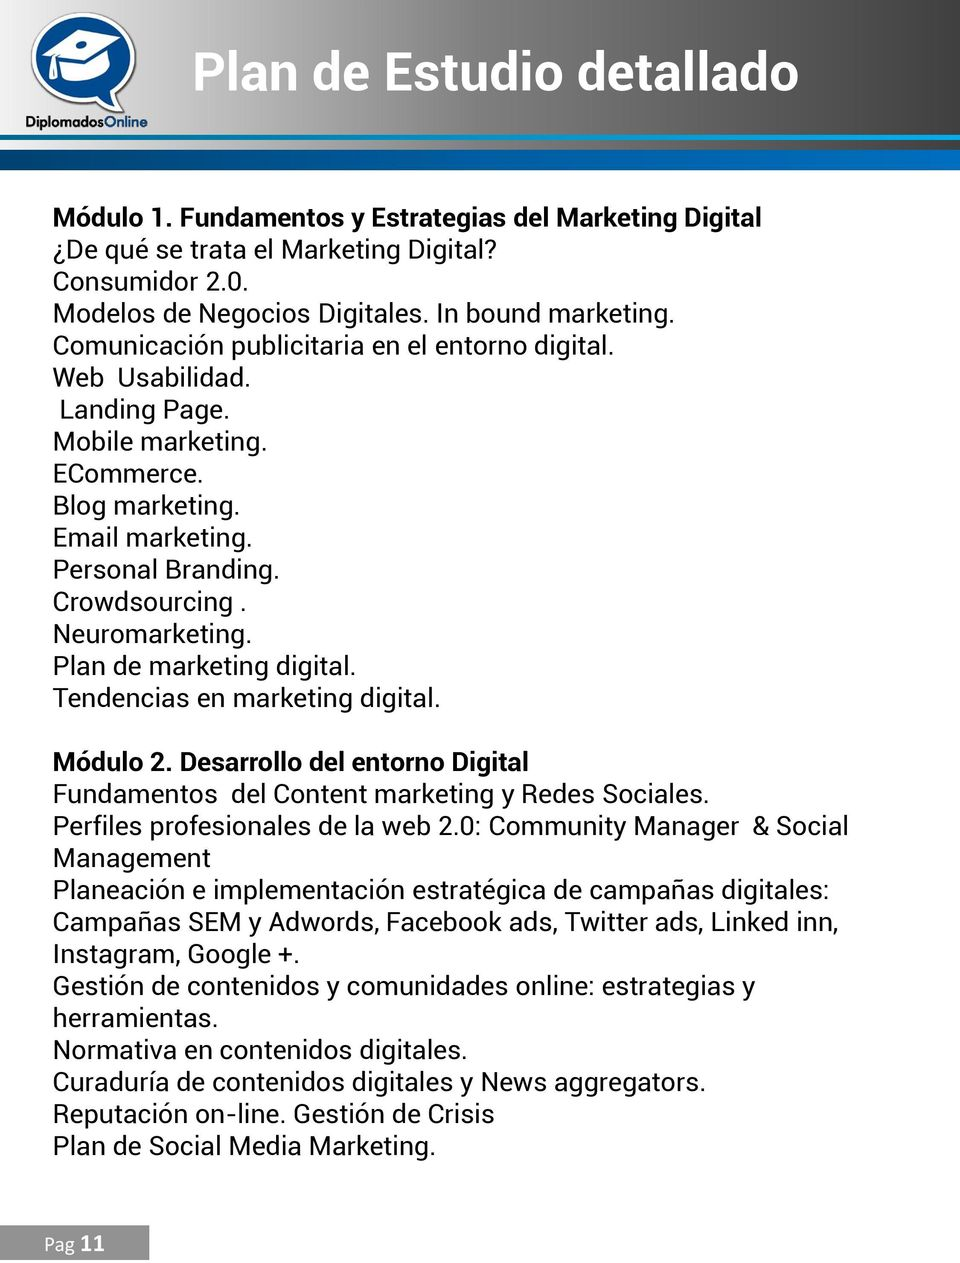 Plan de marketing digital. Tendencias en marketing digital. Módulo 2. Desarrollo del entorno Digital Fundamentos del Content marketing y Redes Sociales. Perfiles profesionales de la web 2.